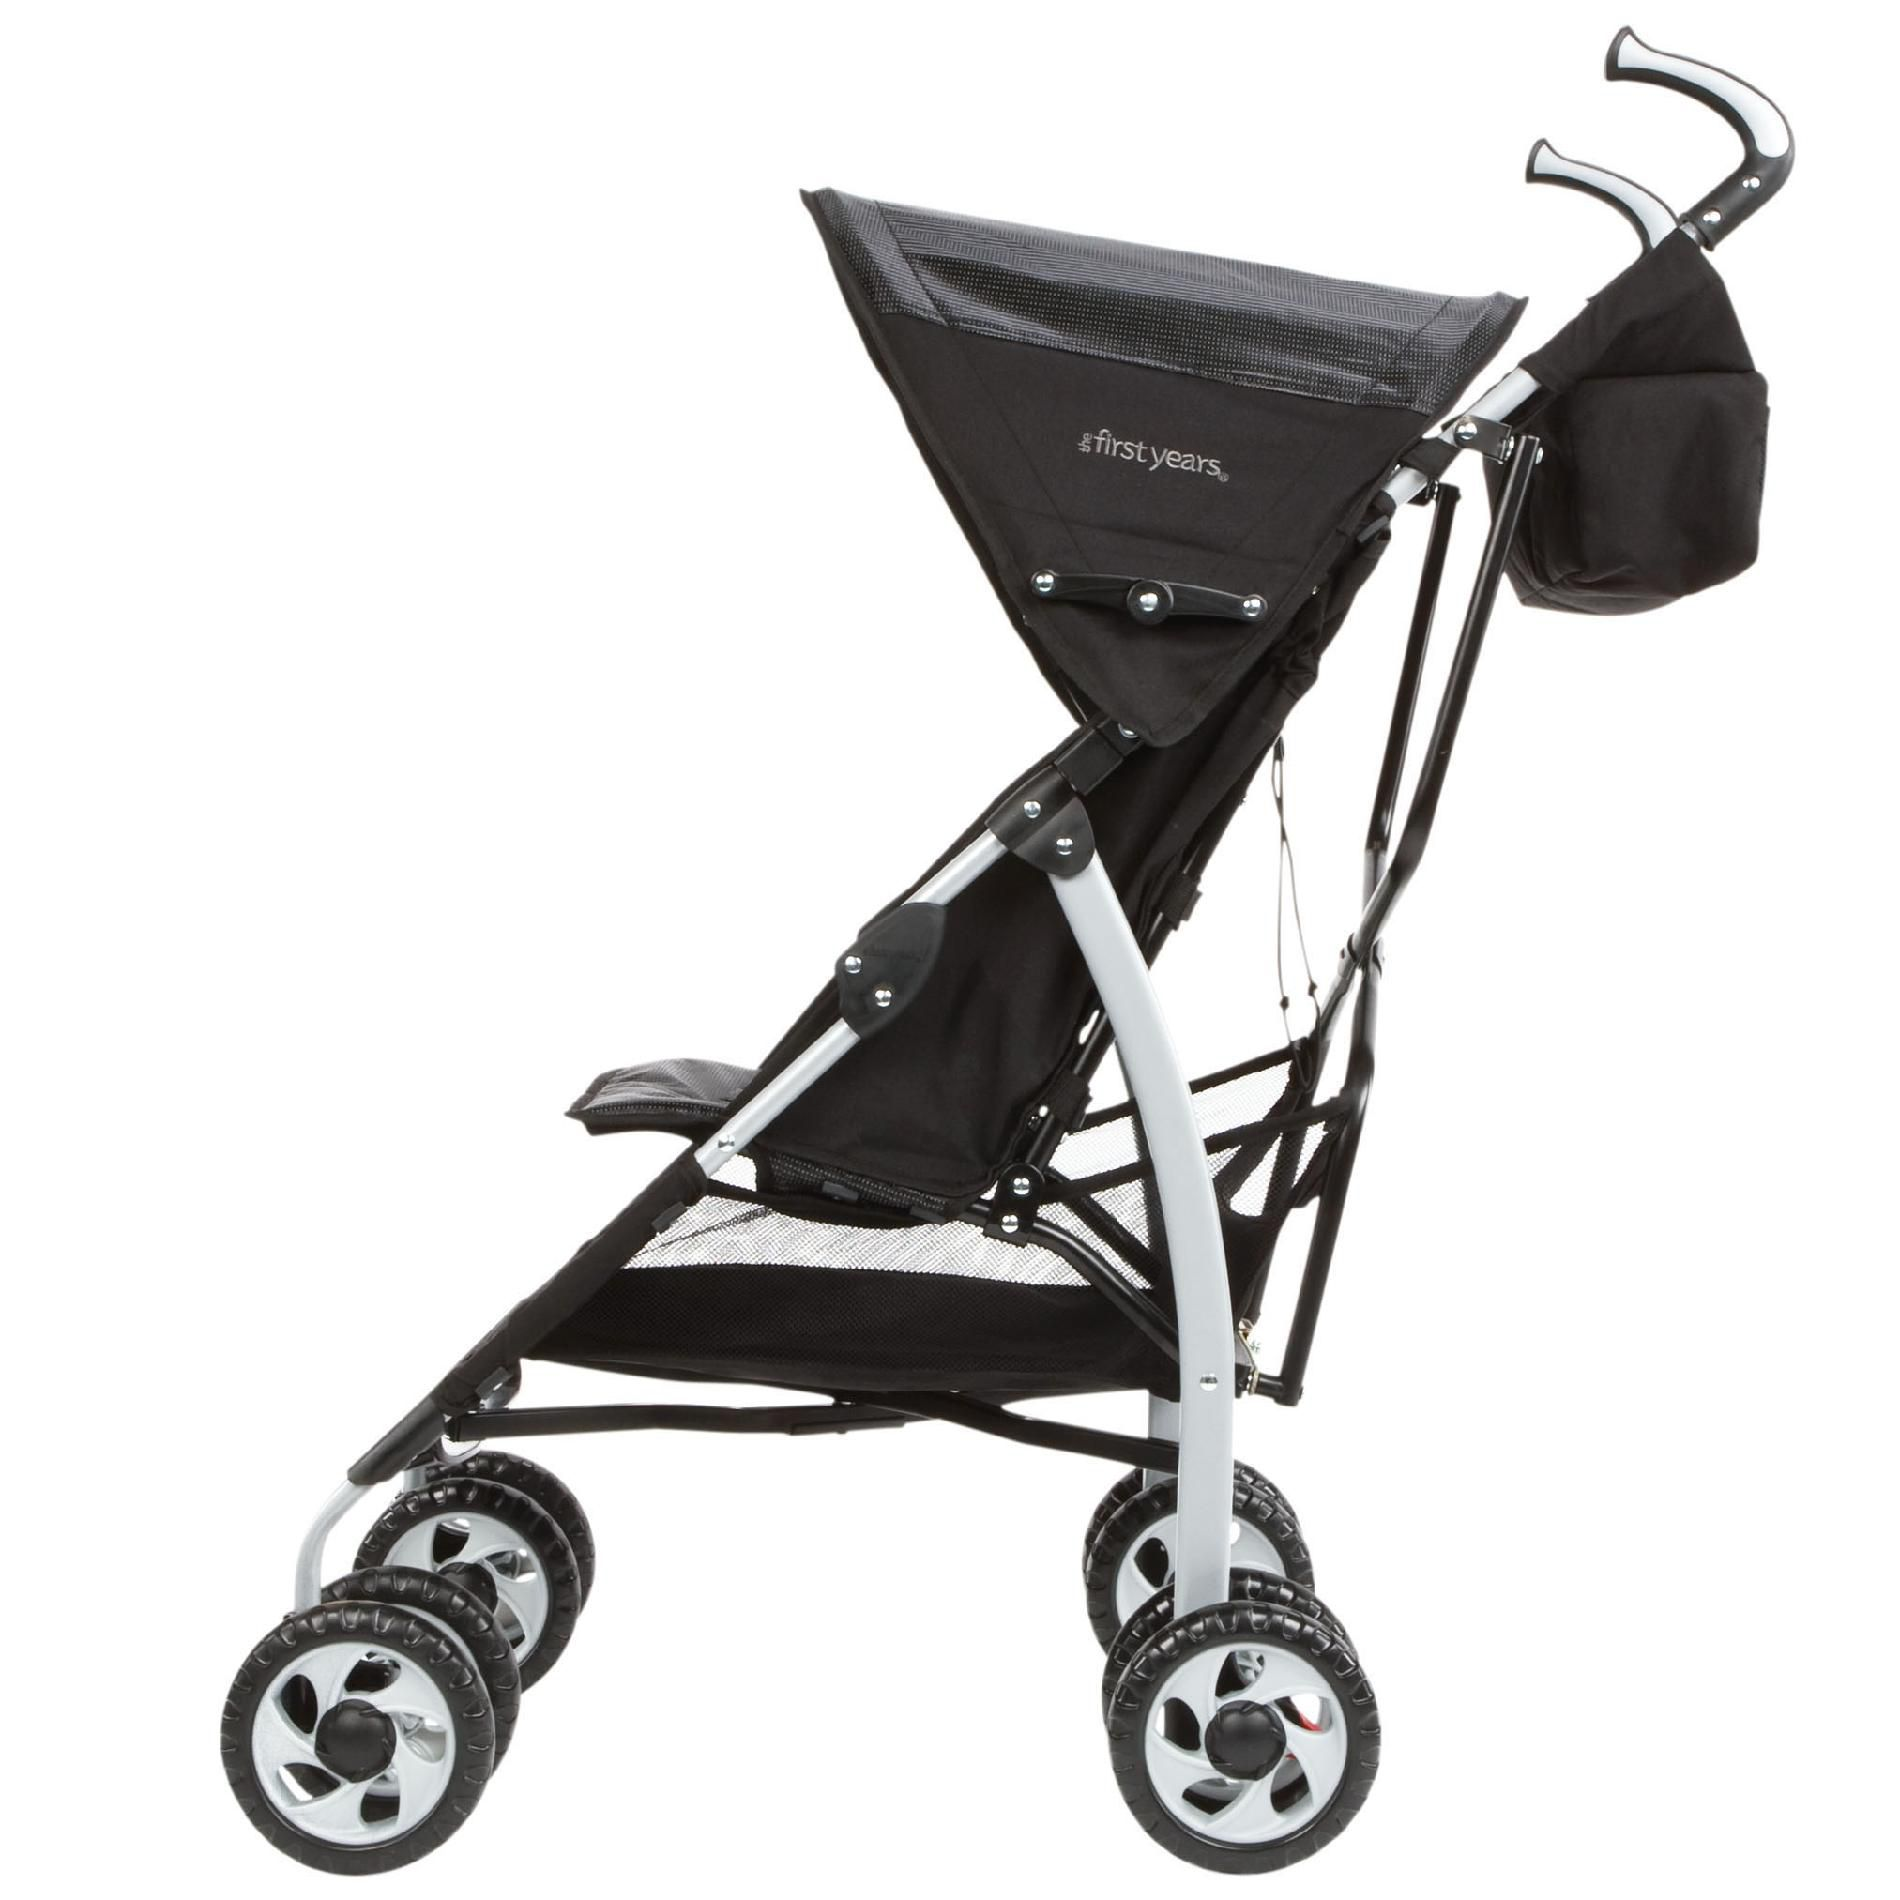 The First Years Ignite Stroller City Chic Black